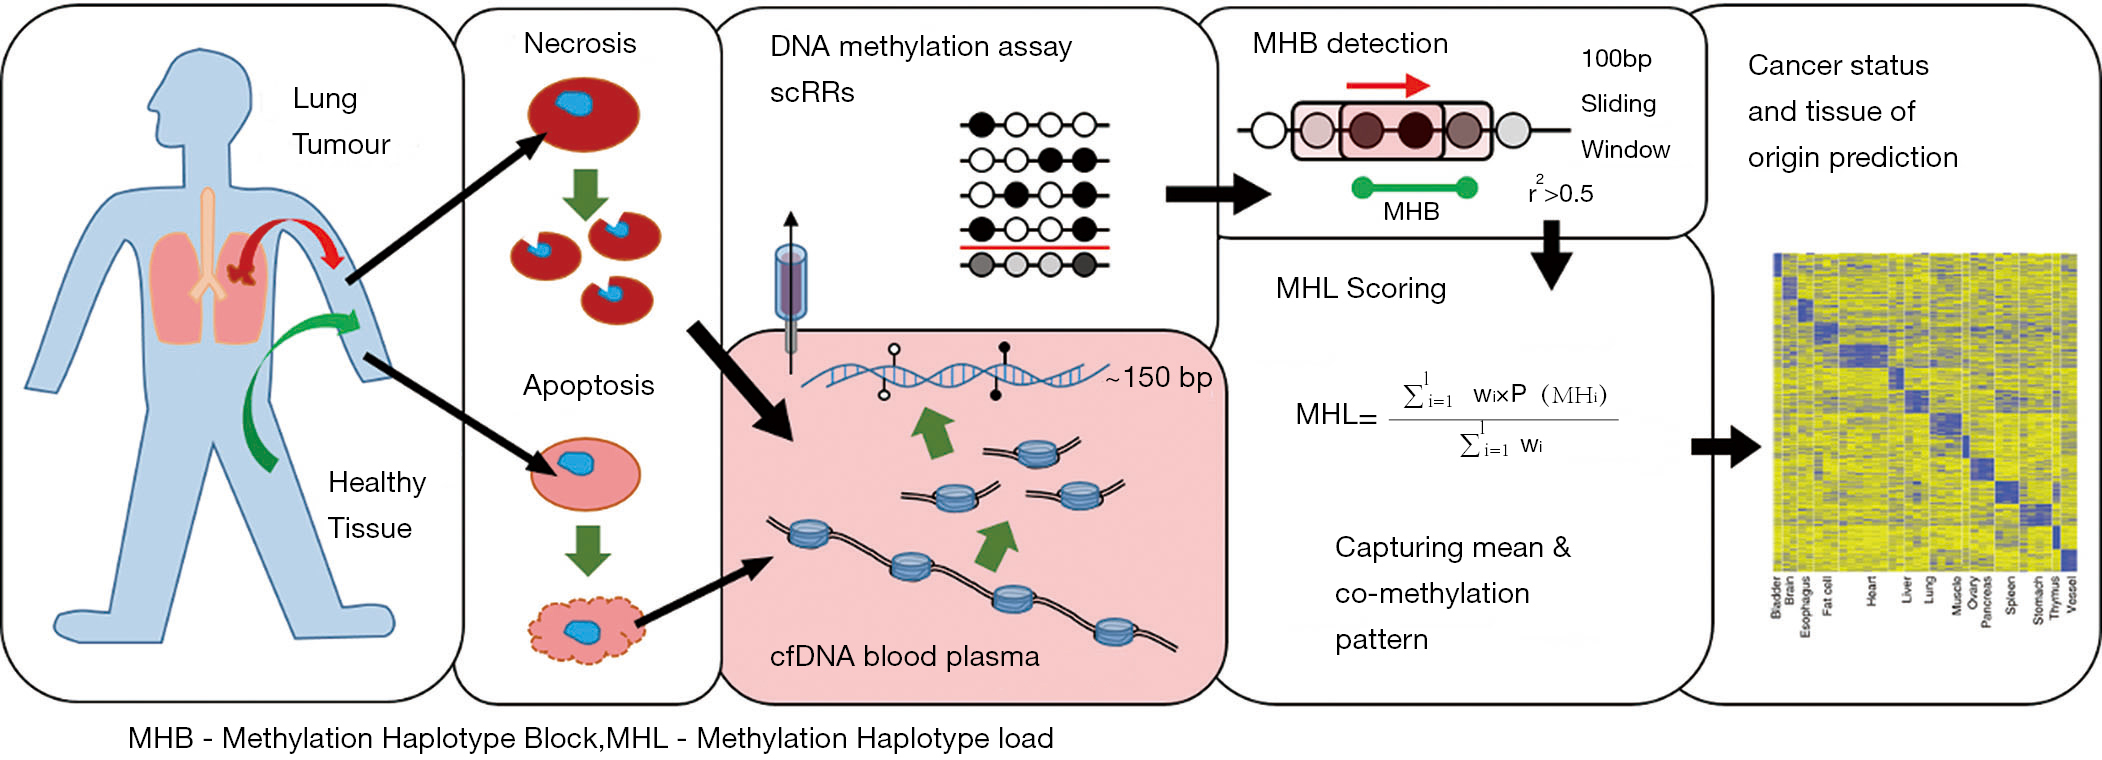 cancer detection and tissue of origin determination with novel